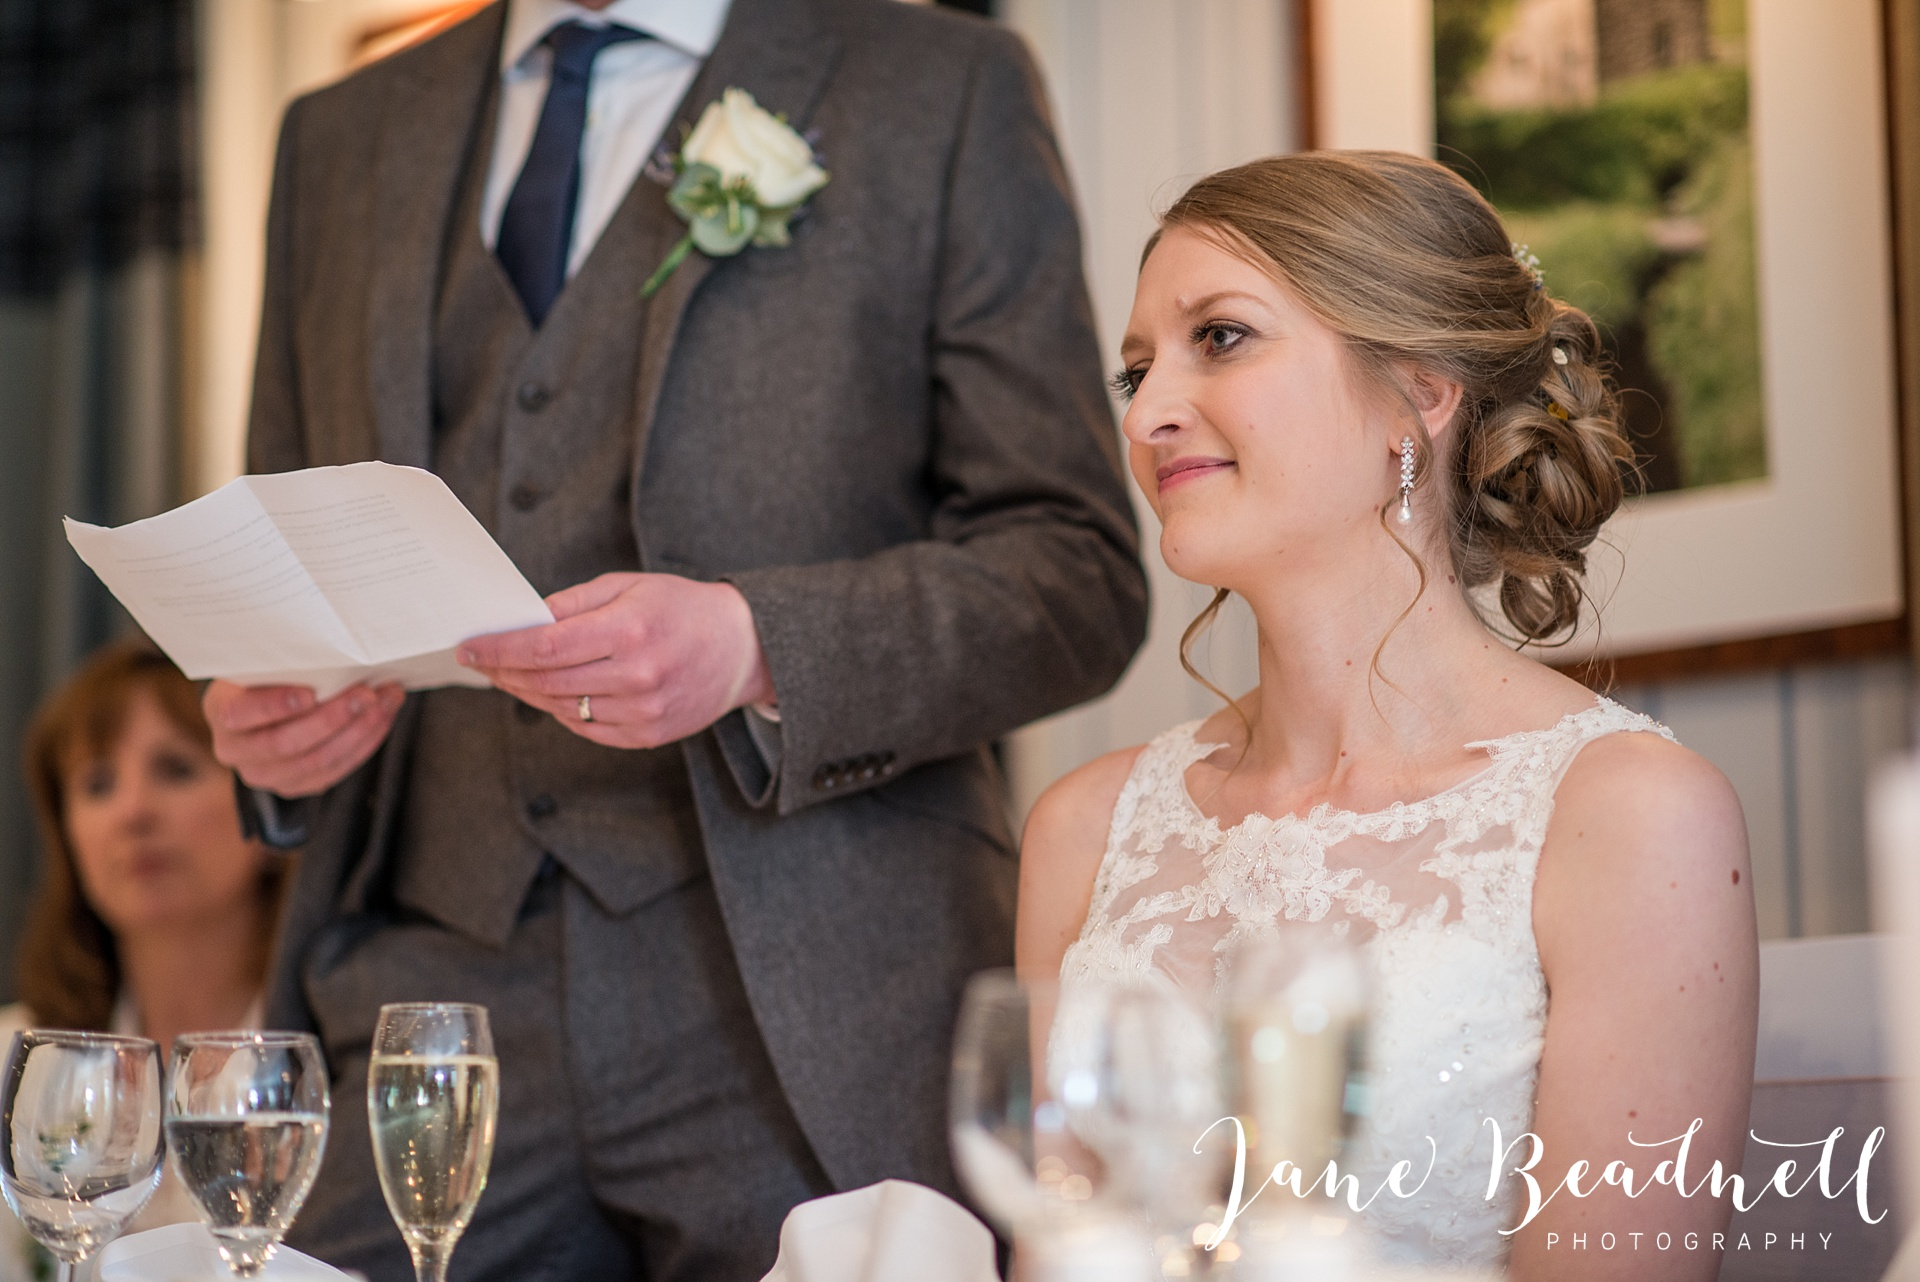 Otley Chevin Lodge wedding photography by Jane Beadnell Photography Leeds_0149